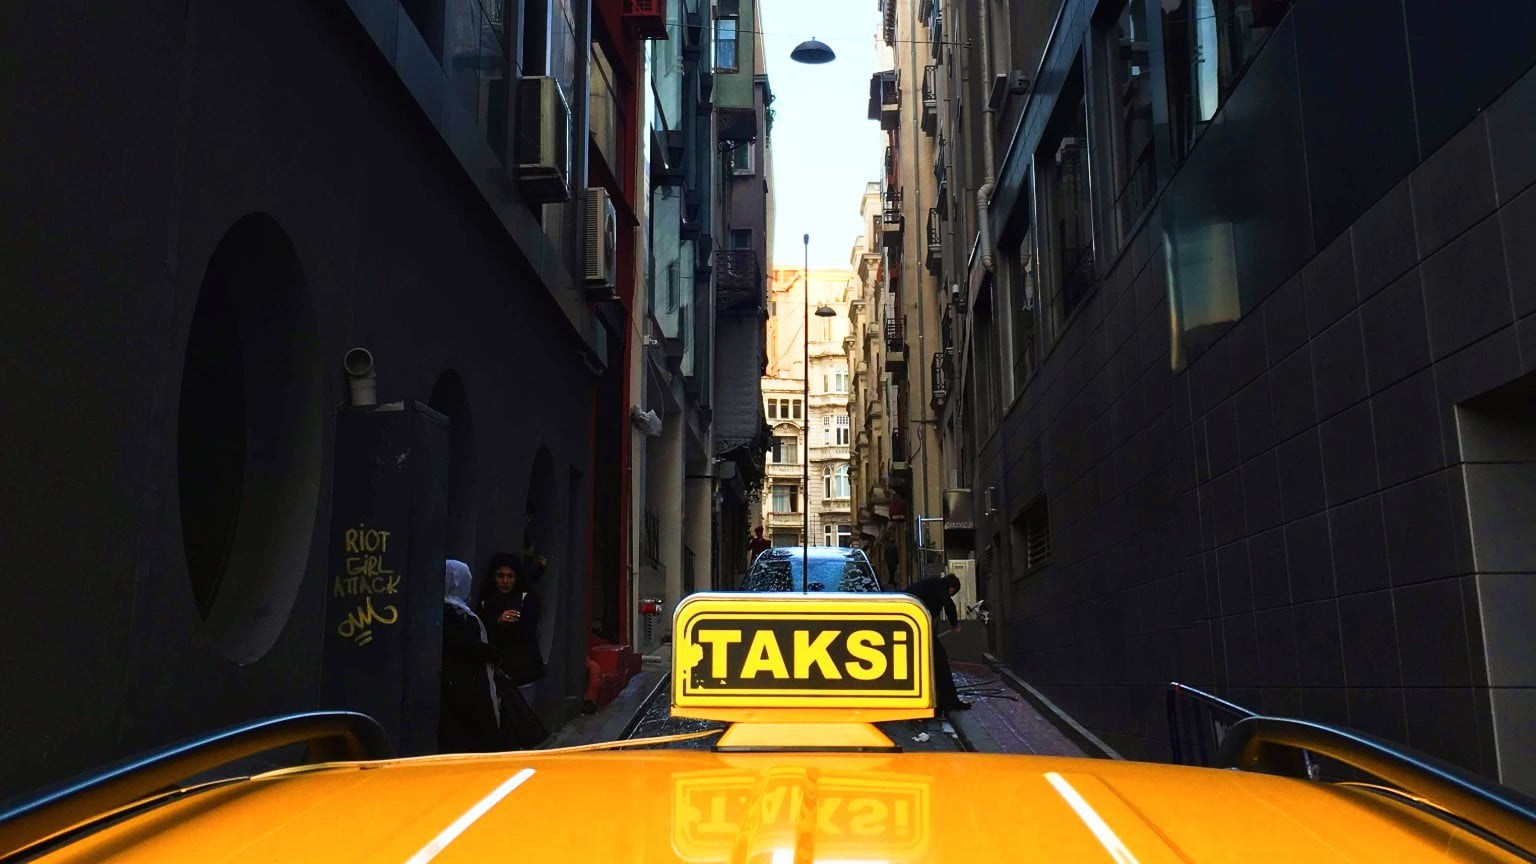 How to Get a Taxi in Istanbul